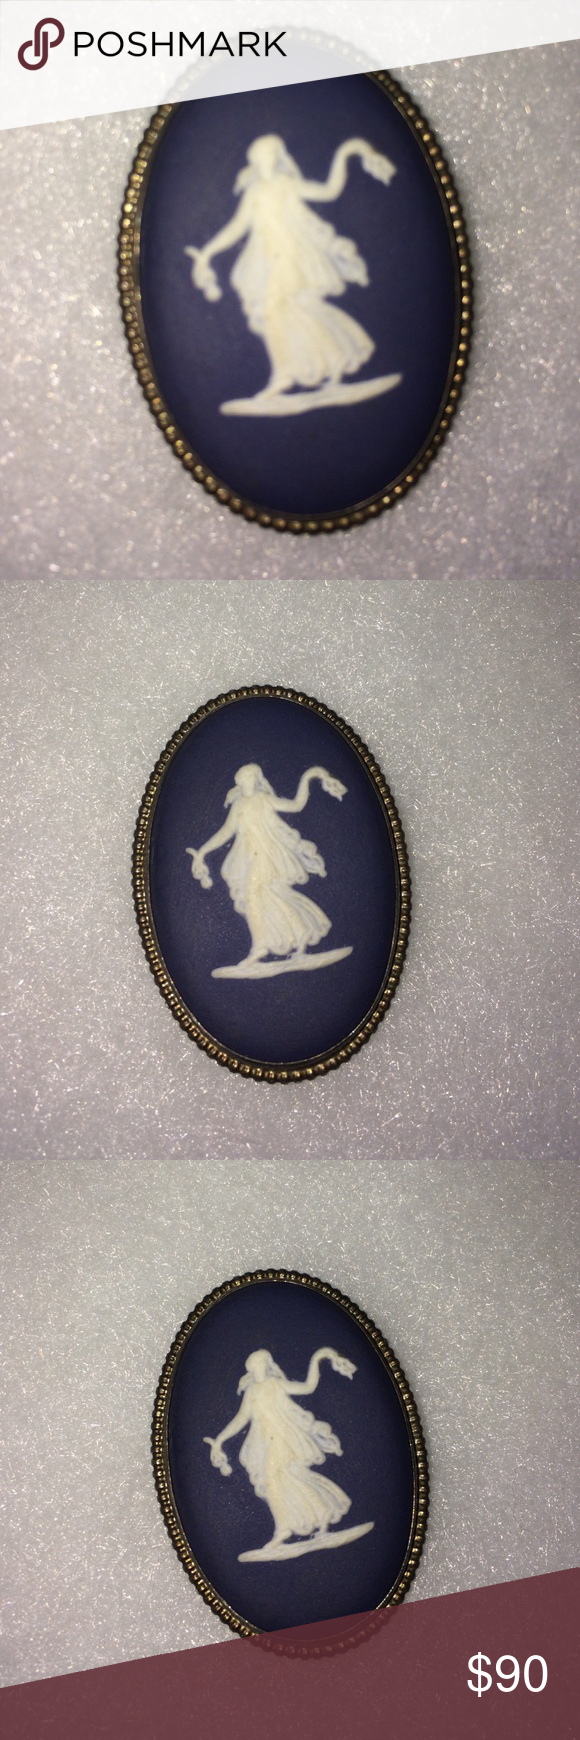 "Wedgwood Brooch This is antique. Wedgwood brooch pin blue cream white portrait of Greek Goddess floral girl classic Wedgwood blue background. Measure 1.25"" wide 1.5 tall Signed Wedgwood made in English C73  absolutely gorgeous wedgwood Jewelry Brooches"